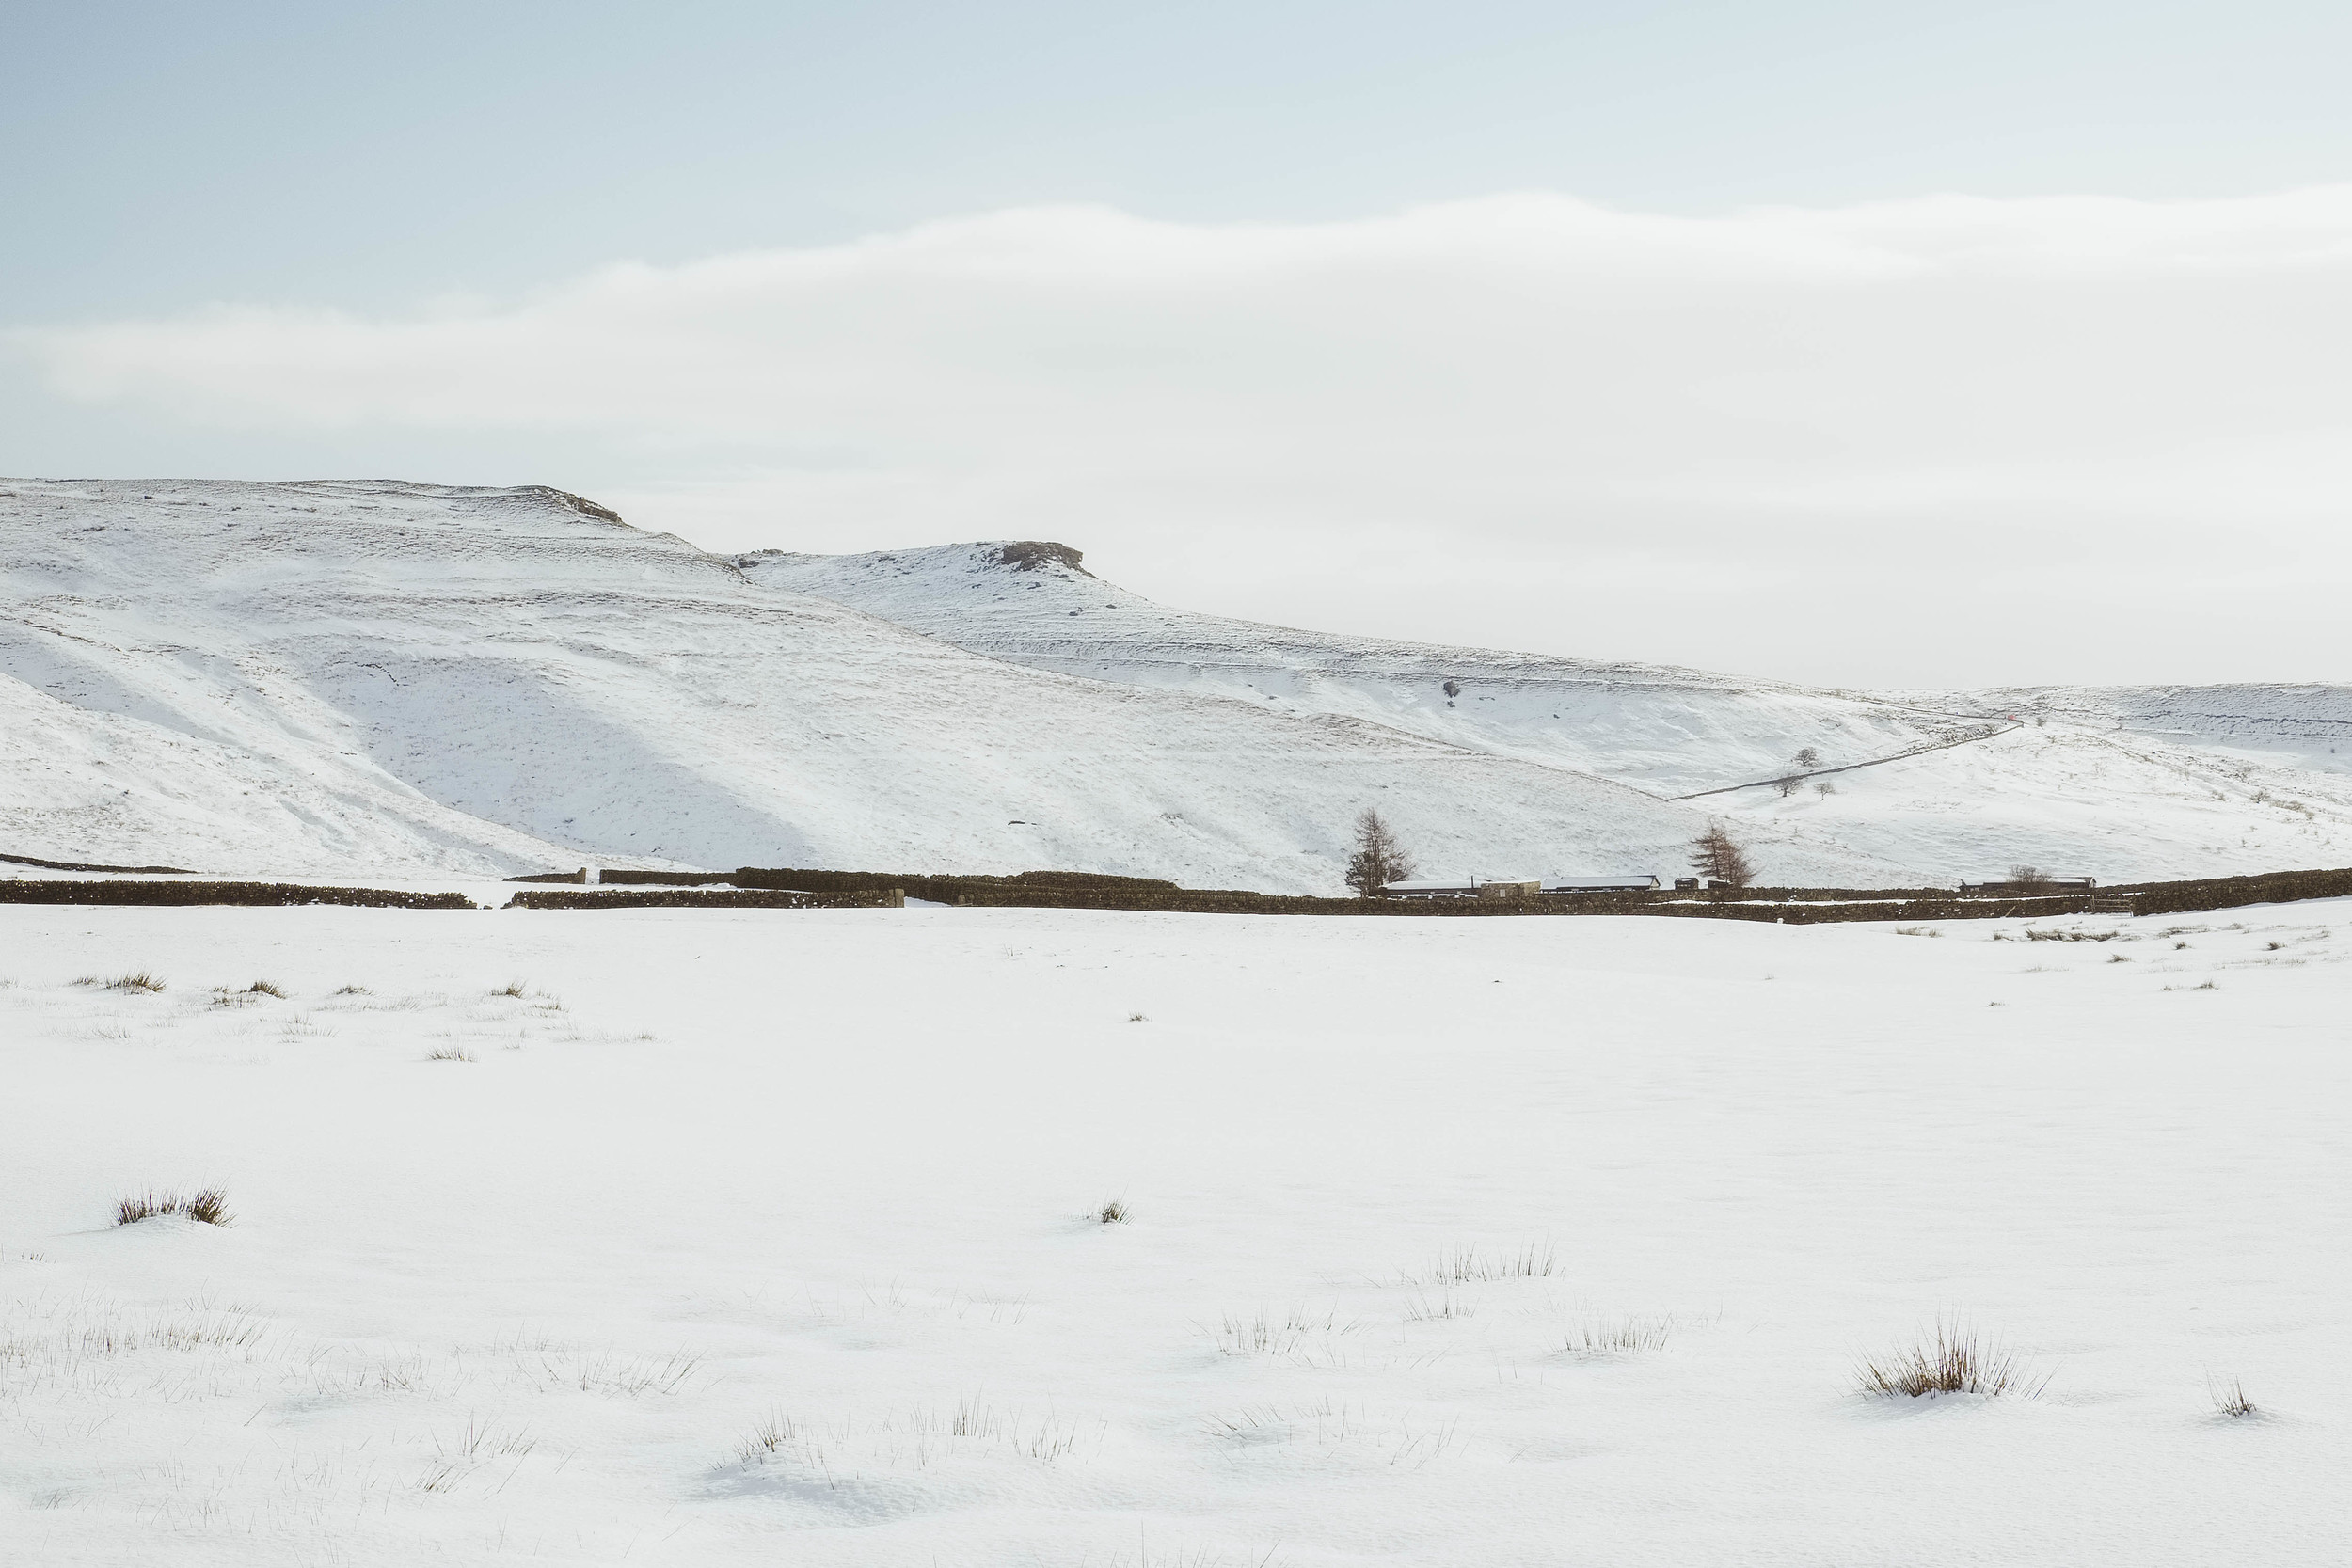 Snowy Peak District.   Fujifilm X-T1 + 18-135mm @ 36.6mm. f/14. 1/150. ISO 250